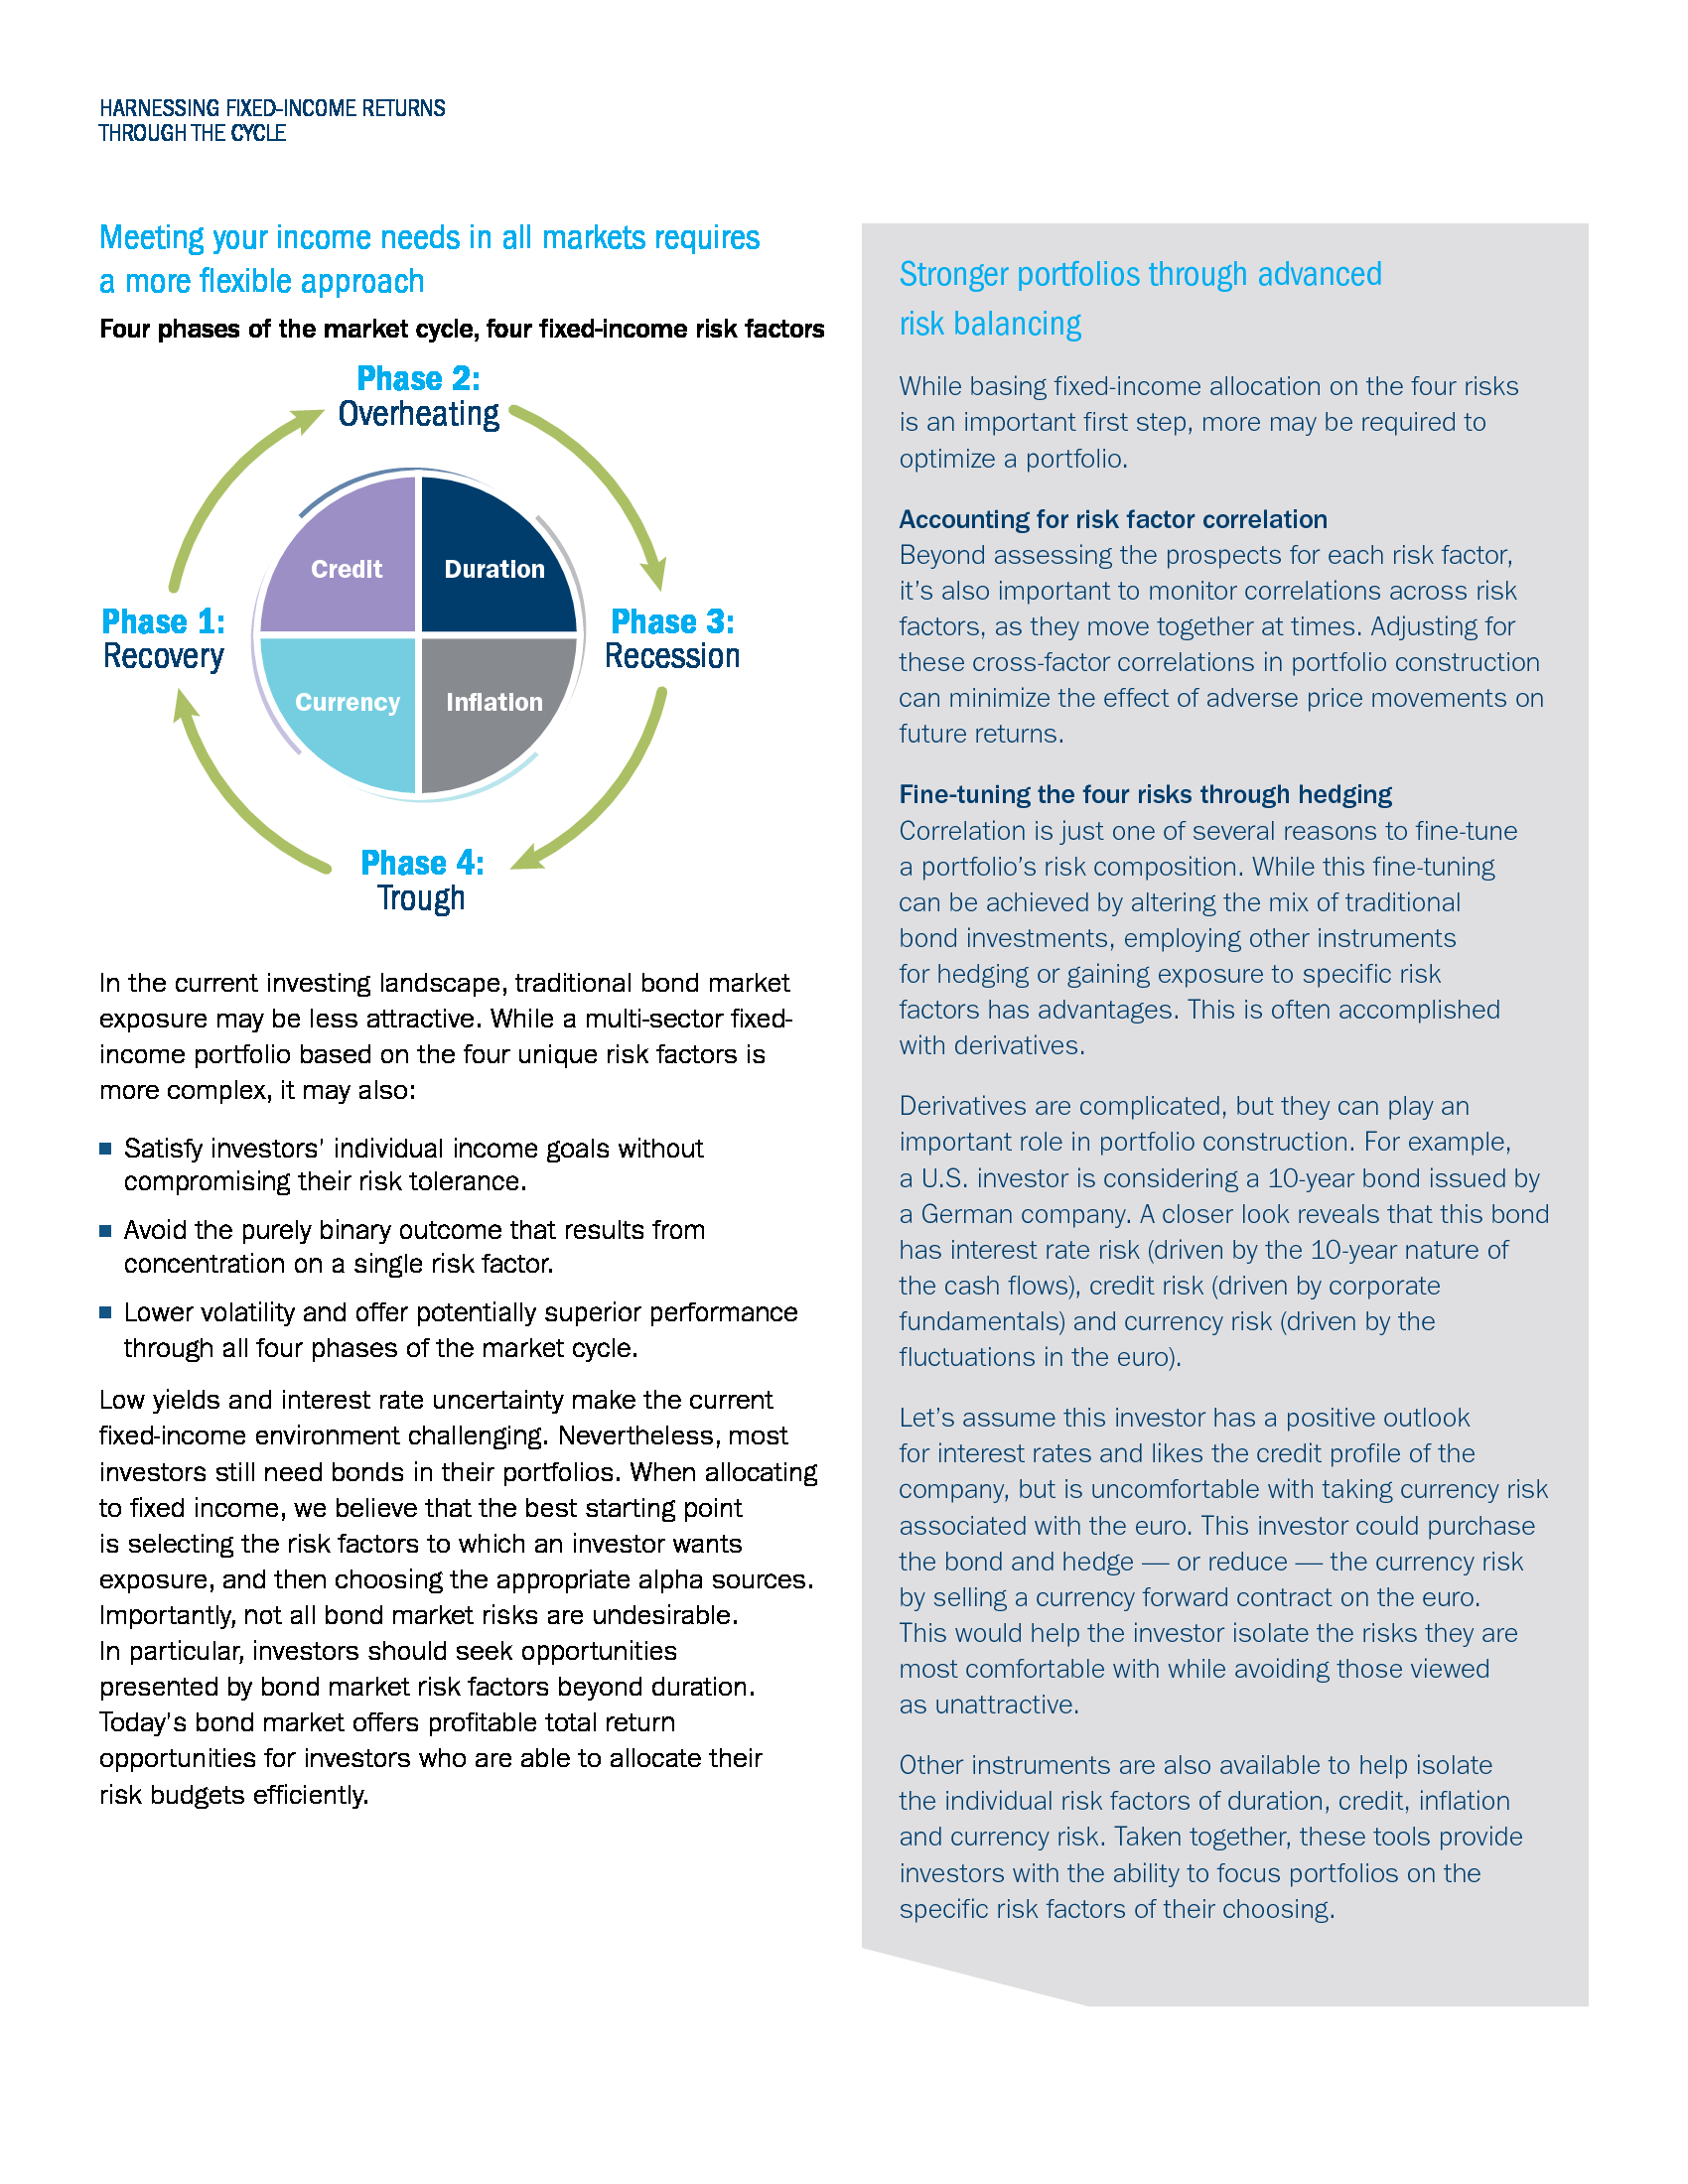 Advisorselect - Harnessing Fixed-Income Returns Through The